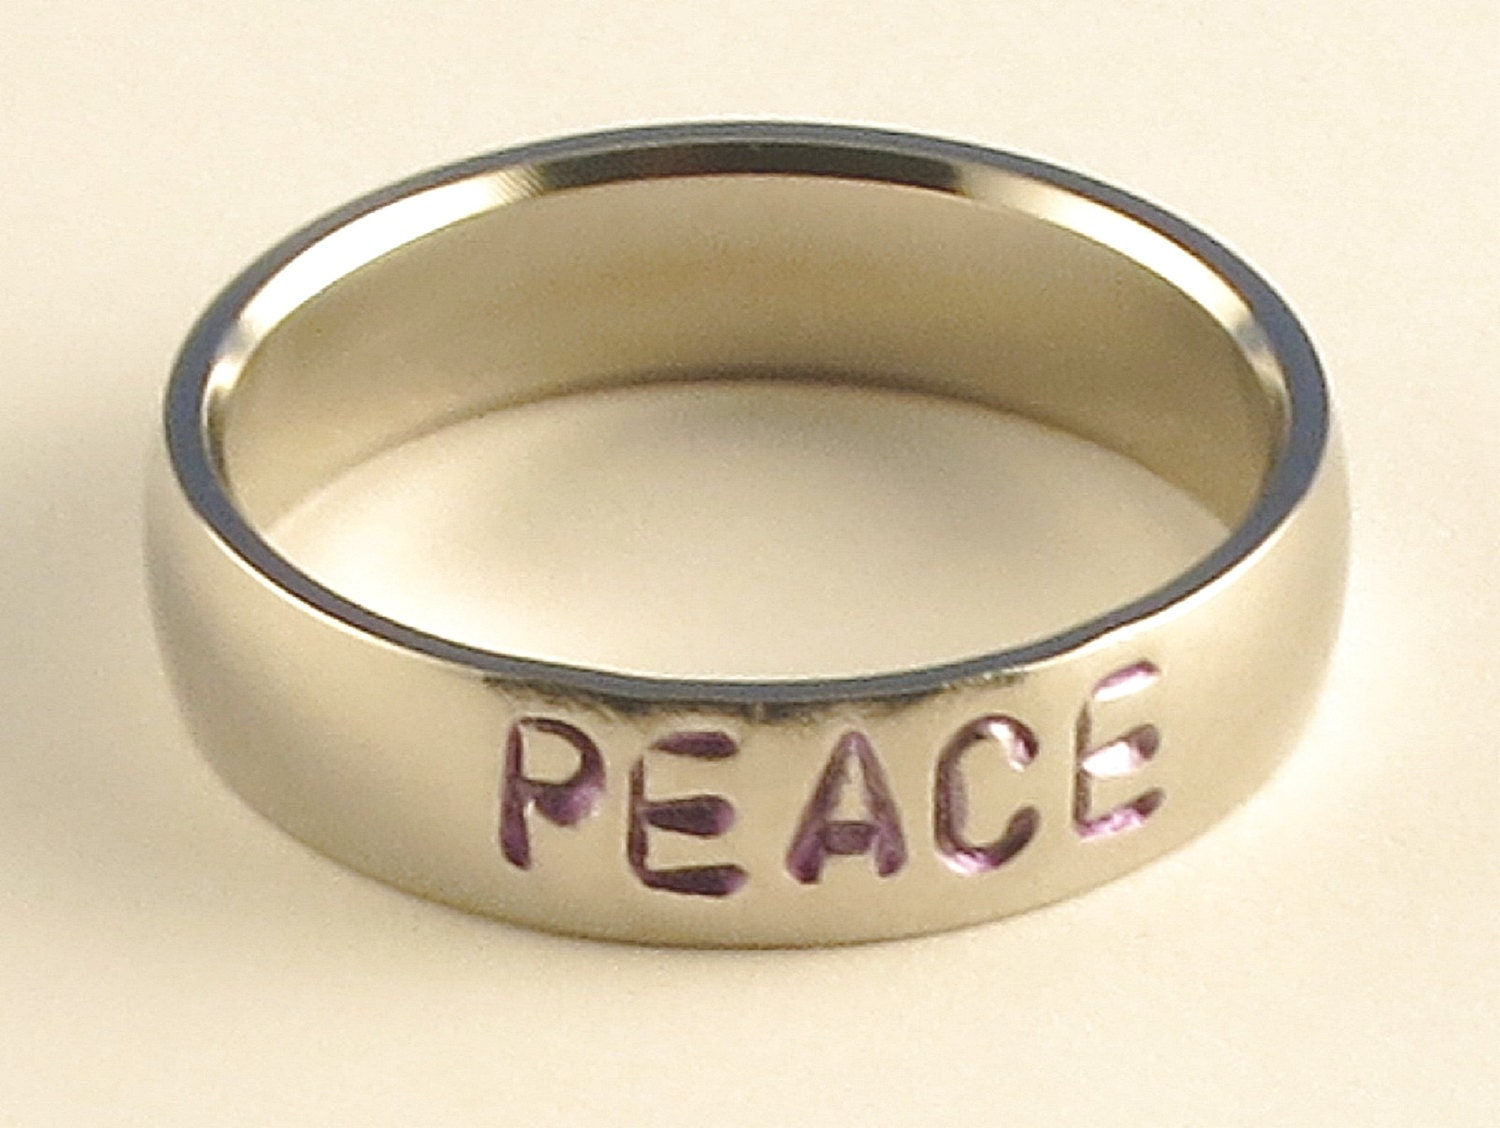 PEACE Personalized Hand Stamped Customized Stainless Steel Low Dome Name Ring 5mm